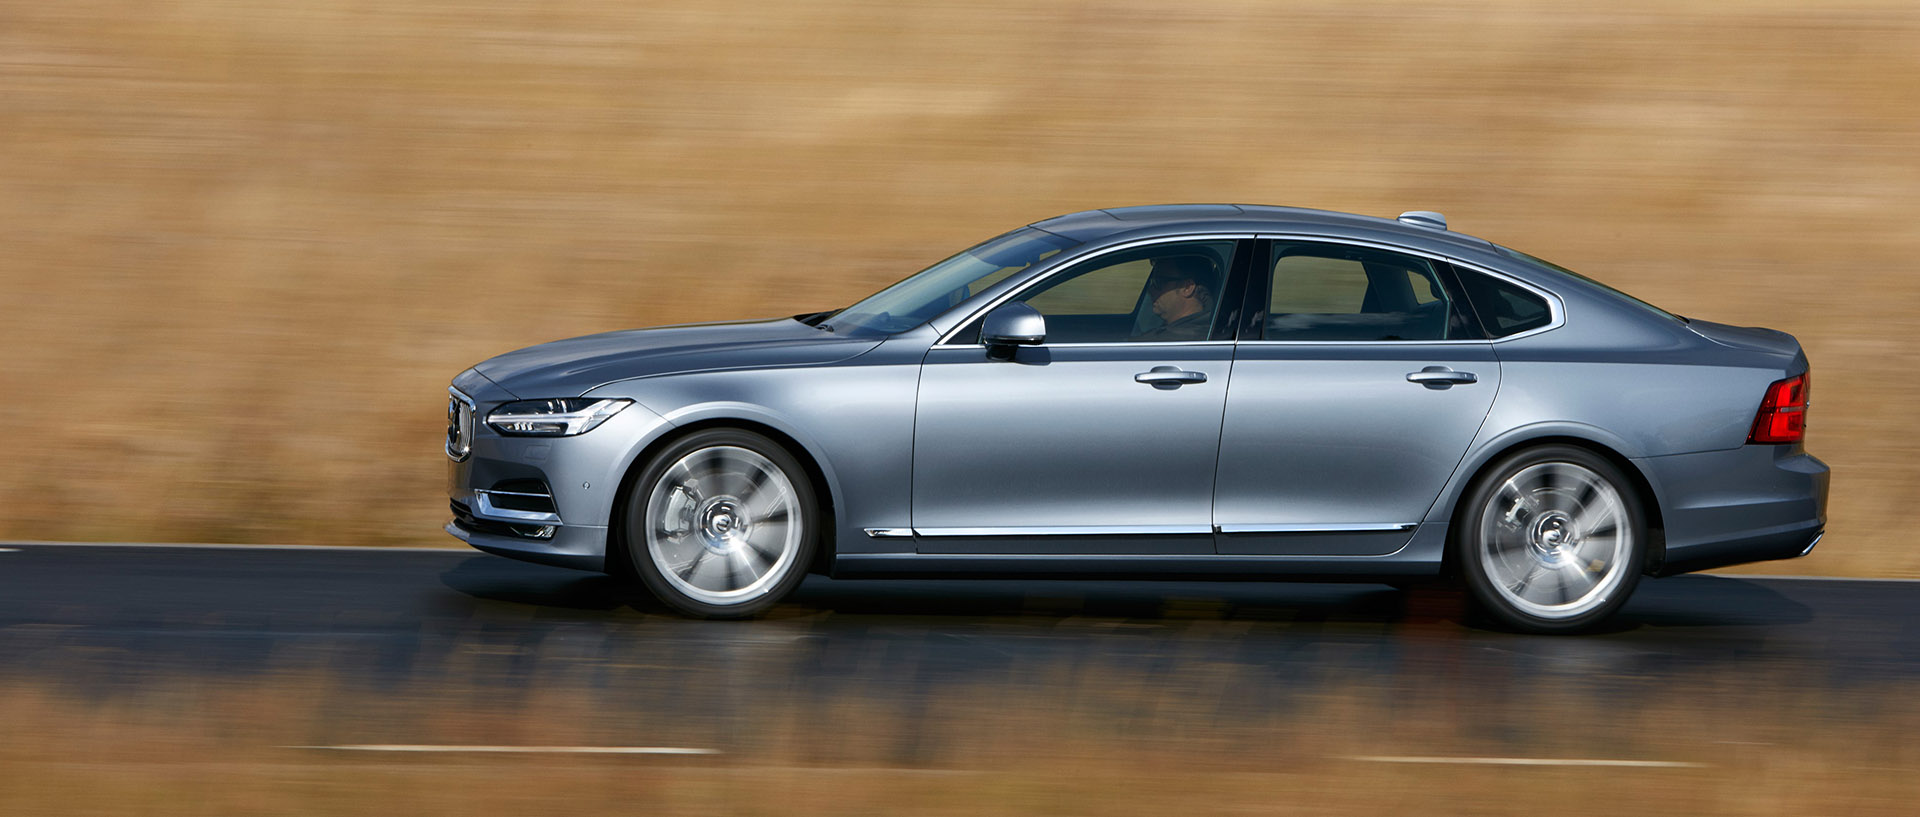 2017 volvo s90 sedan unveiled consumer reports. Black Bedroom Furniture Sets. Home Design Ideas